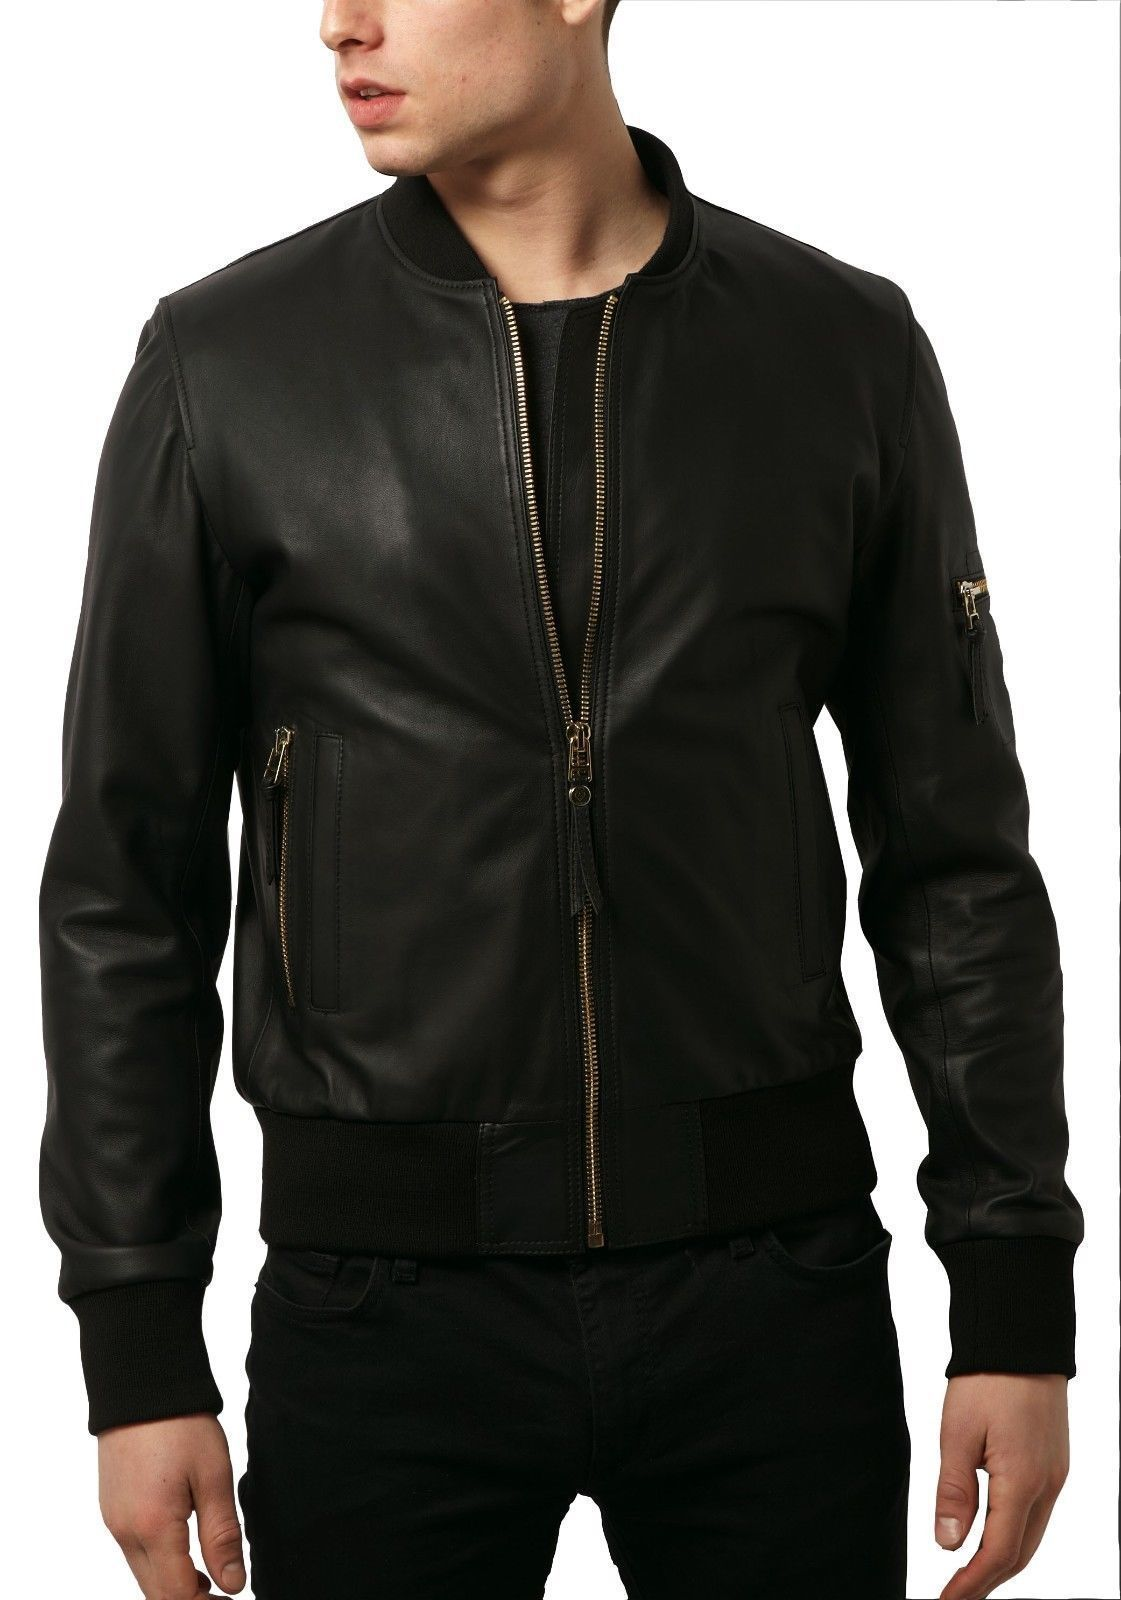 Pin by Gary Sutton on Jackets Leather jacket men, Black